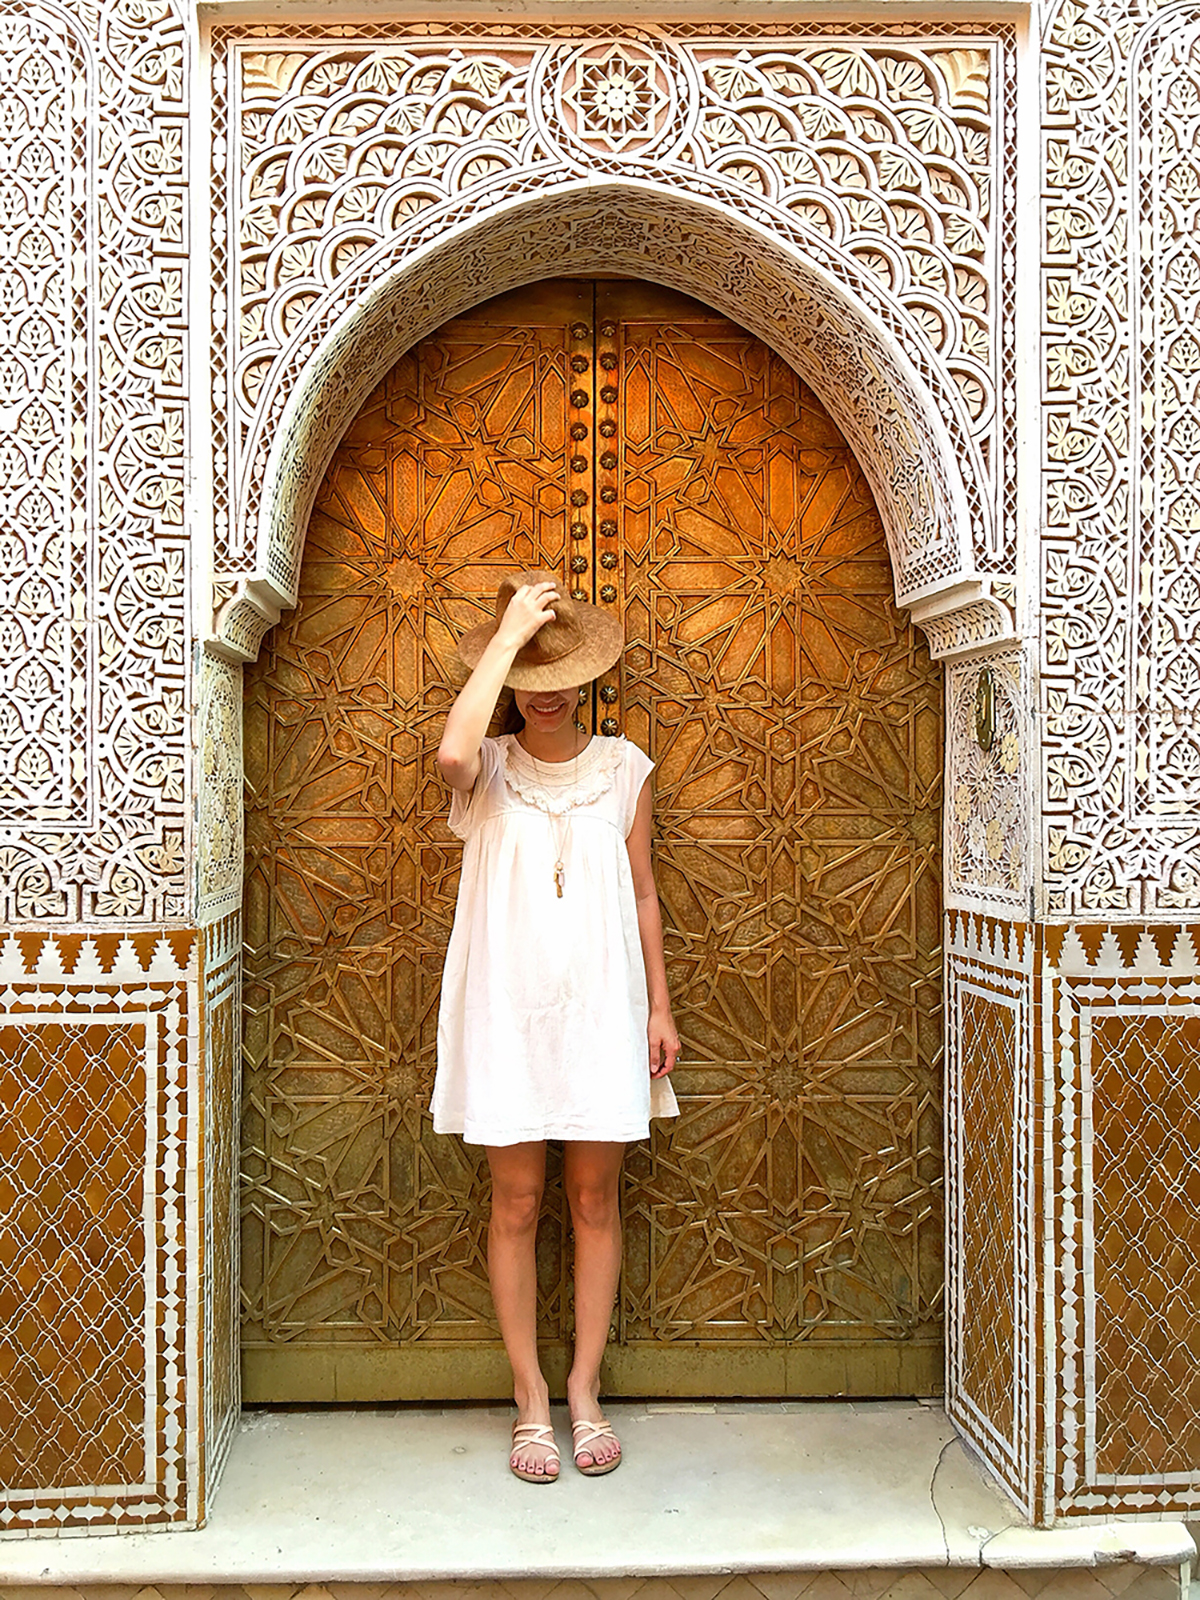 Marrakech Honeymoon Ideas and Travel Guide - http://ruffledblog.com/marrakech-morocco-travel-guide/